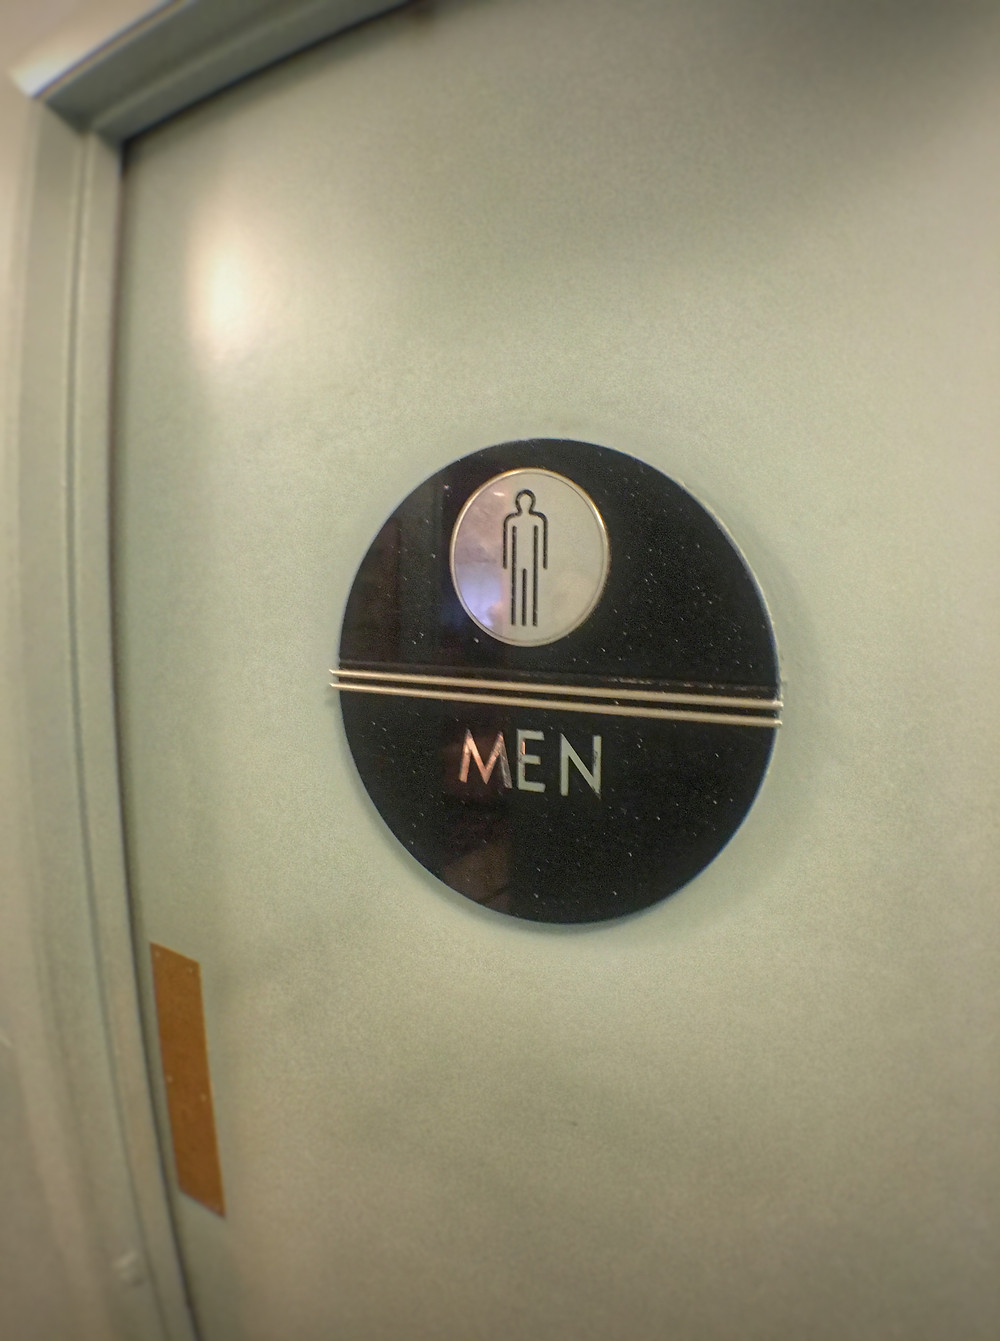 Entrance to the Men's Room at 50's Prime Time Cafe